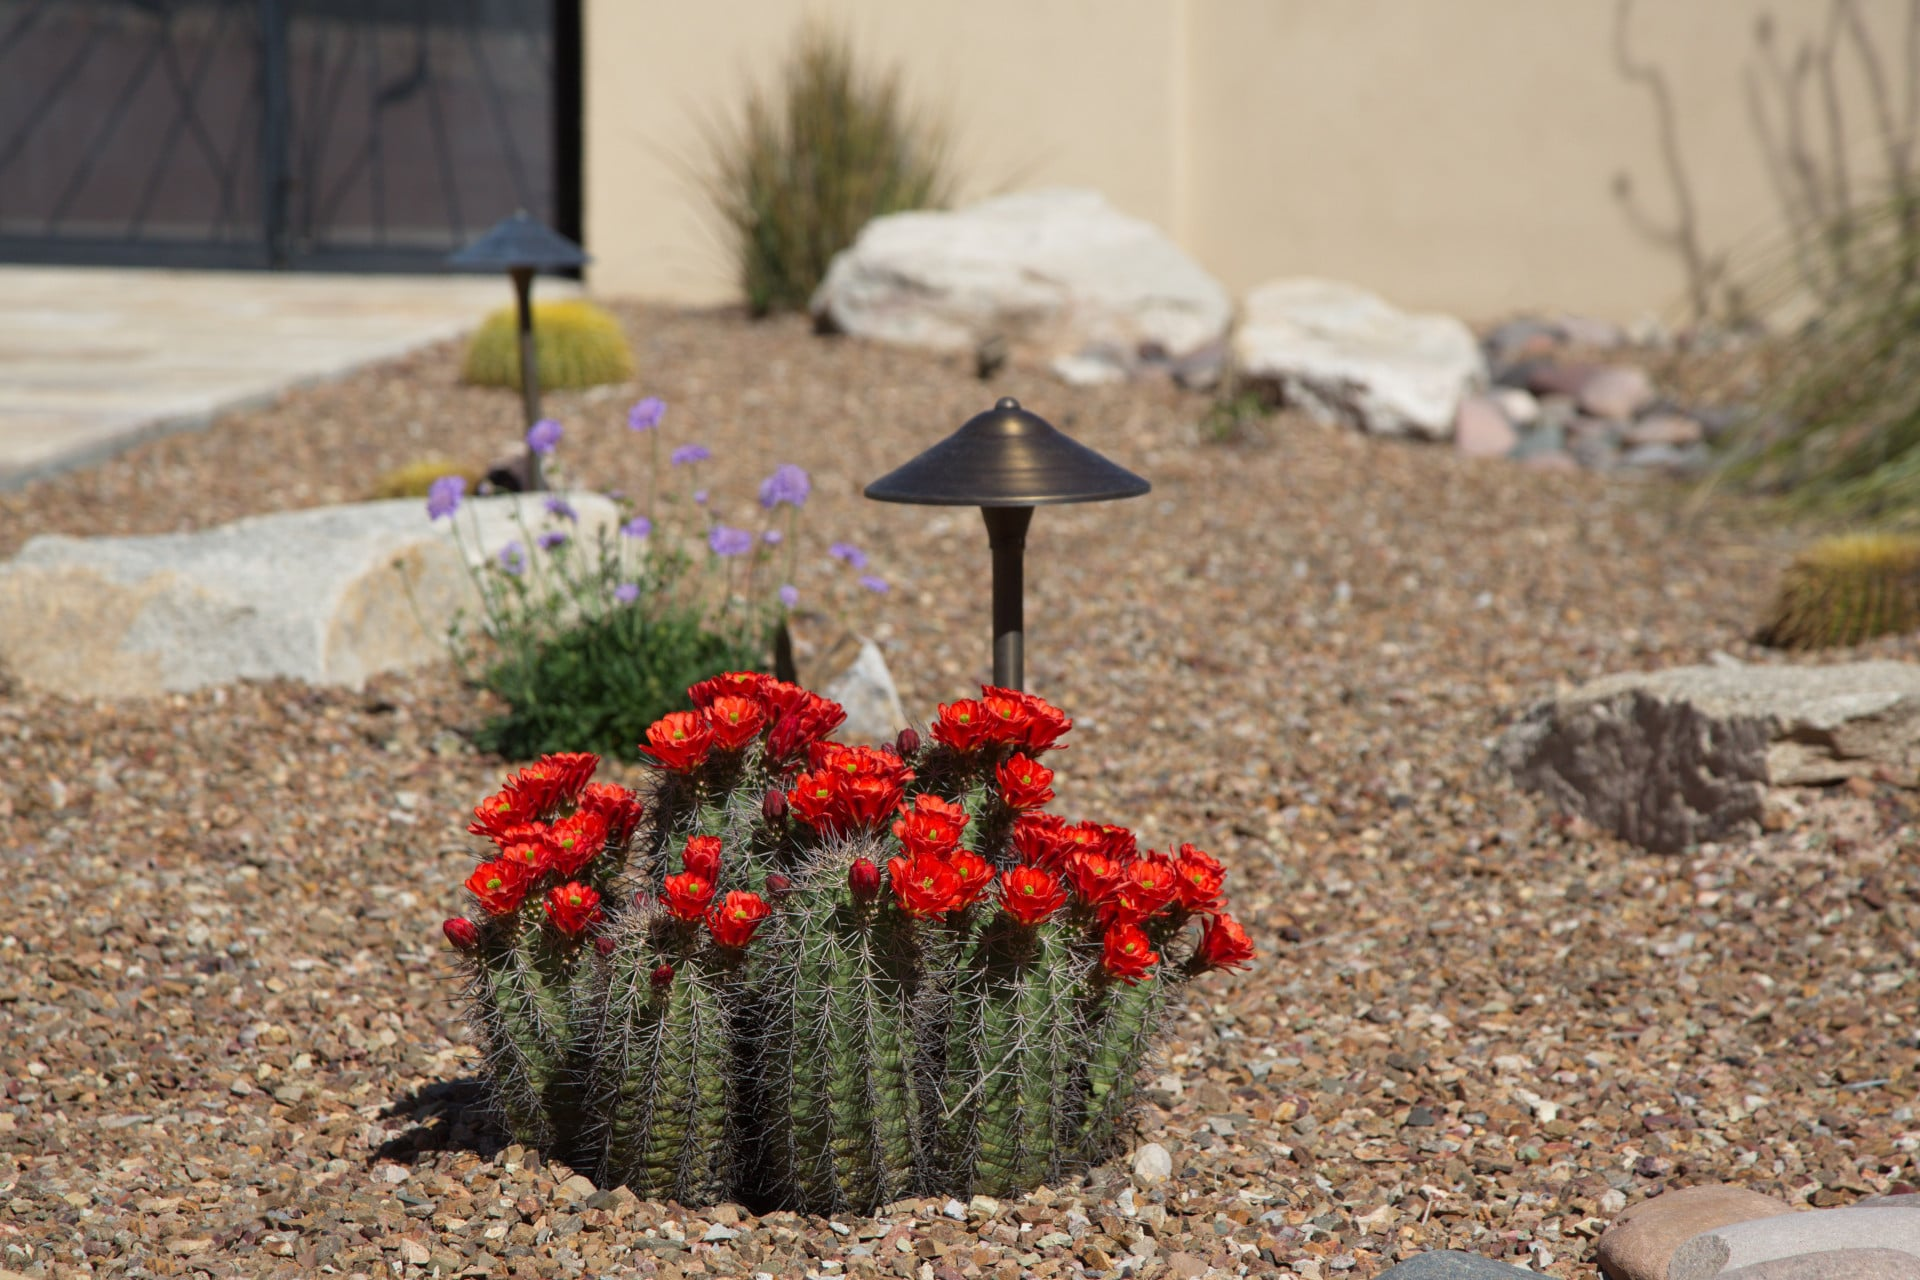 Landscaping rocks and a flowering cactus